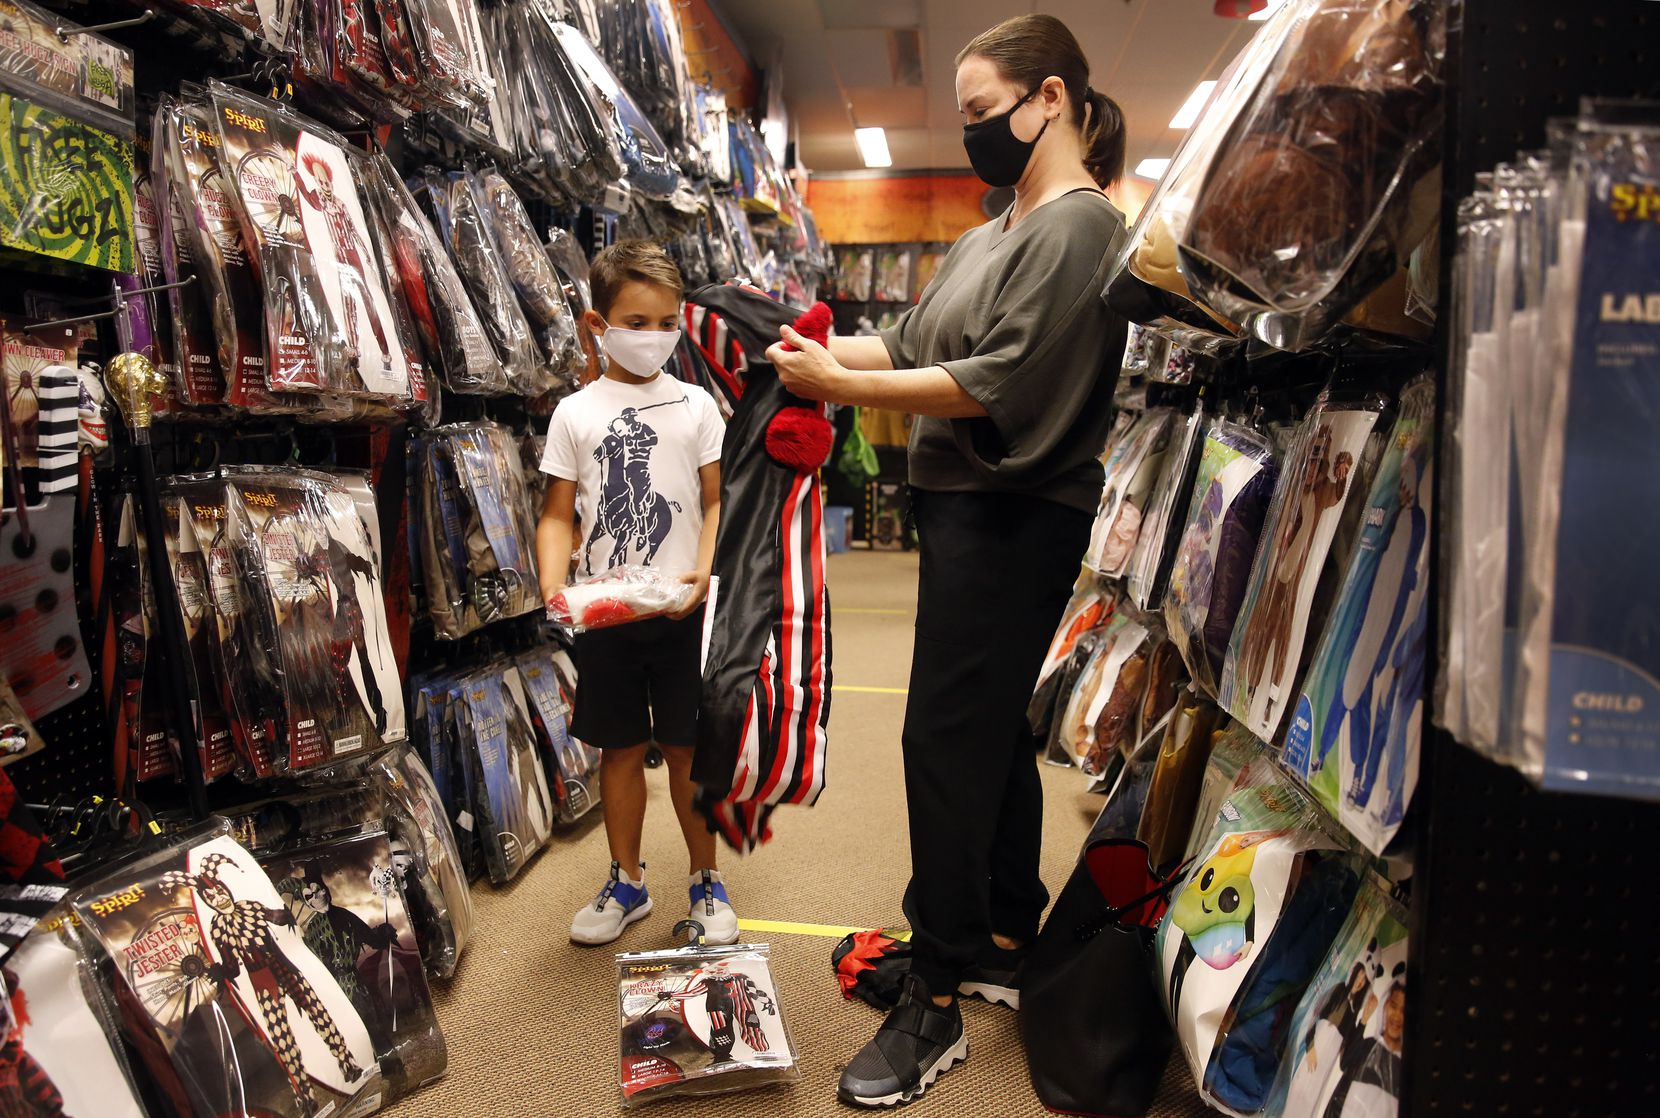 Carey Marin of Richardson checks to see whether a twisted circus clown outfit will fit her son, Joshua, at Spirit Halloween, a pop-up store on Coit Road in Dallas.